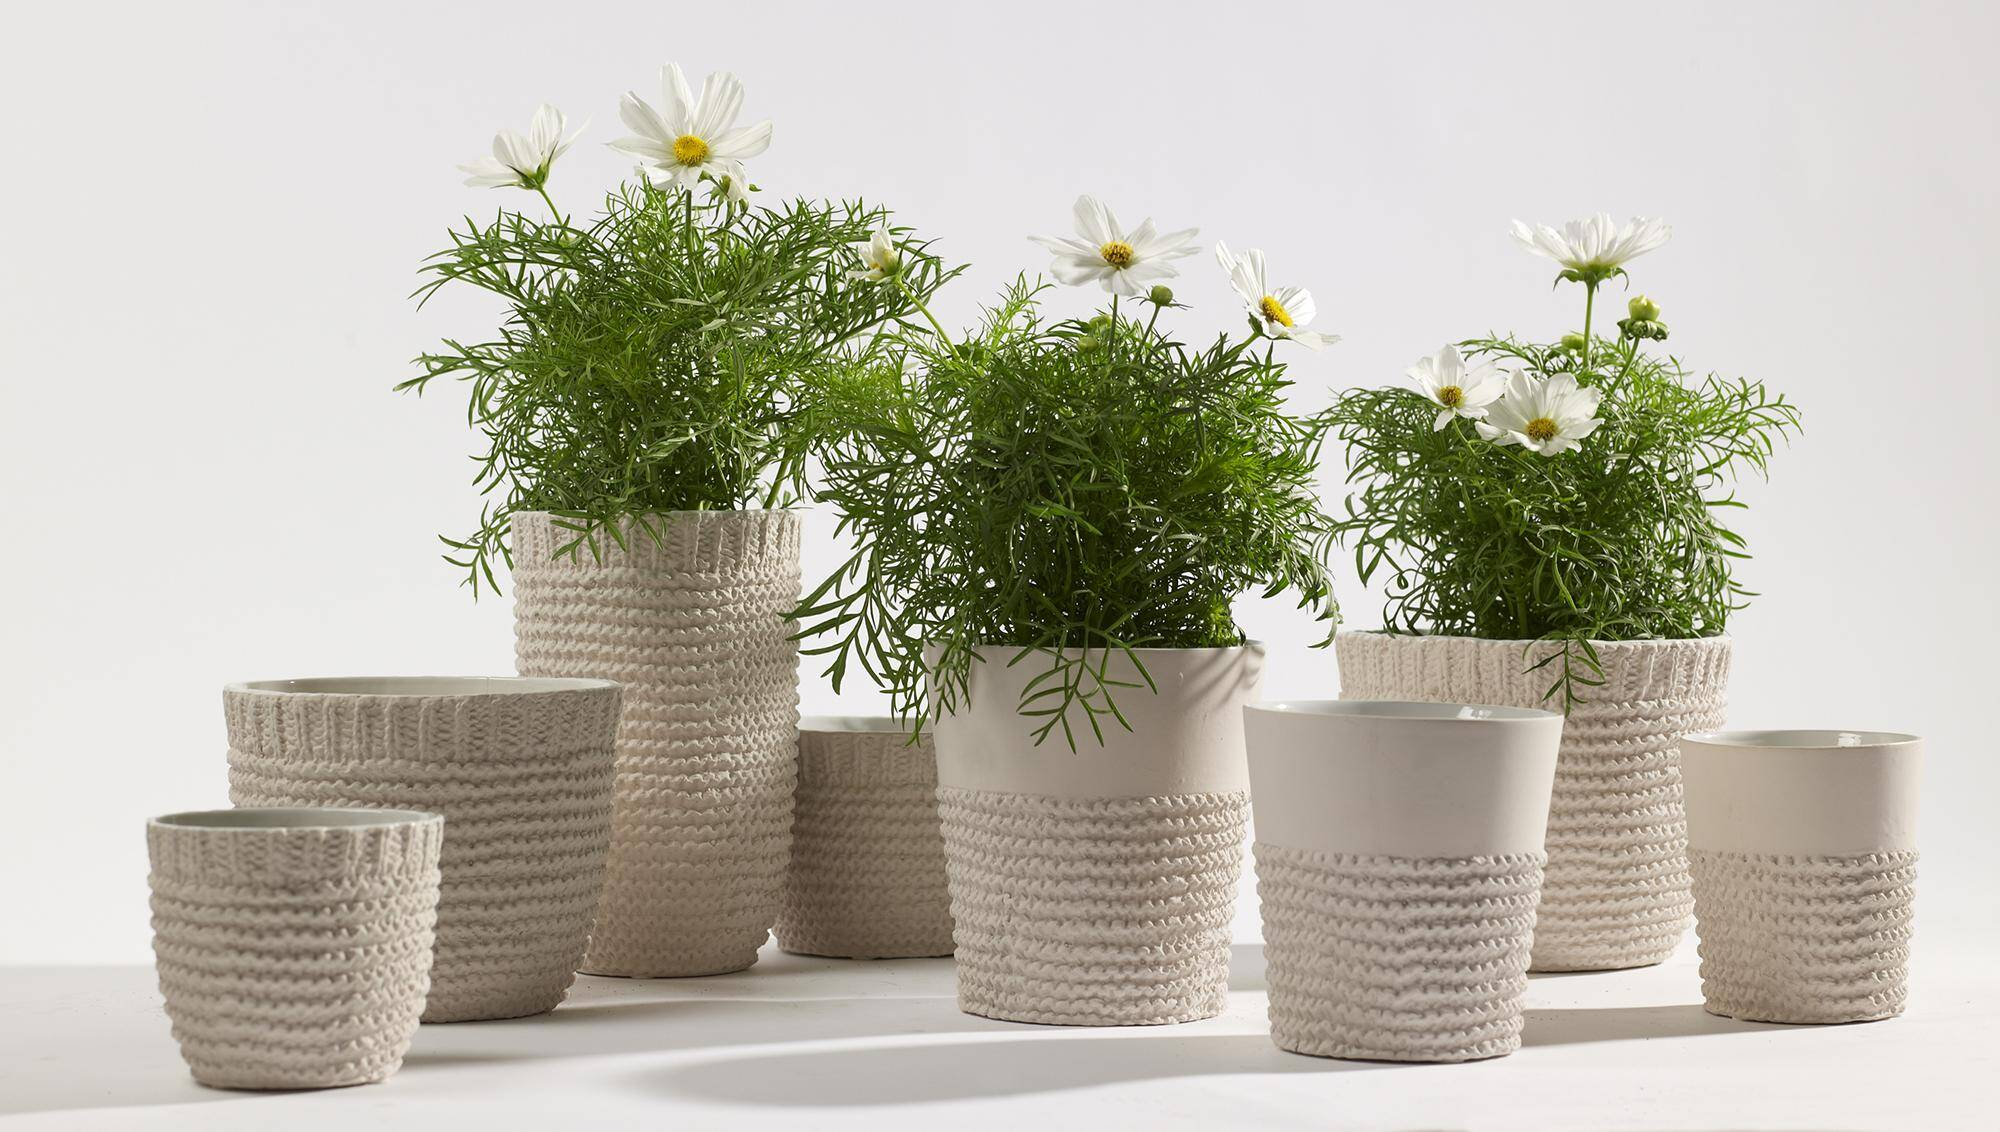 How To Make Beautiful Flower Pots At Home Flower Pots Can Transform Any Garden Or Interior